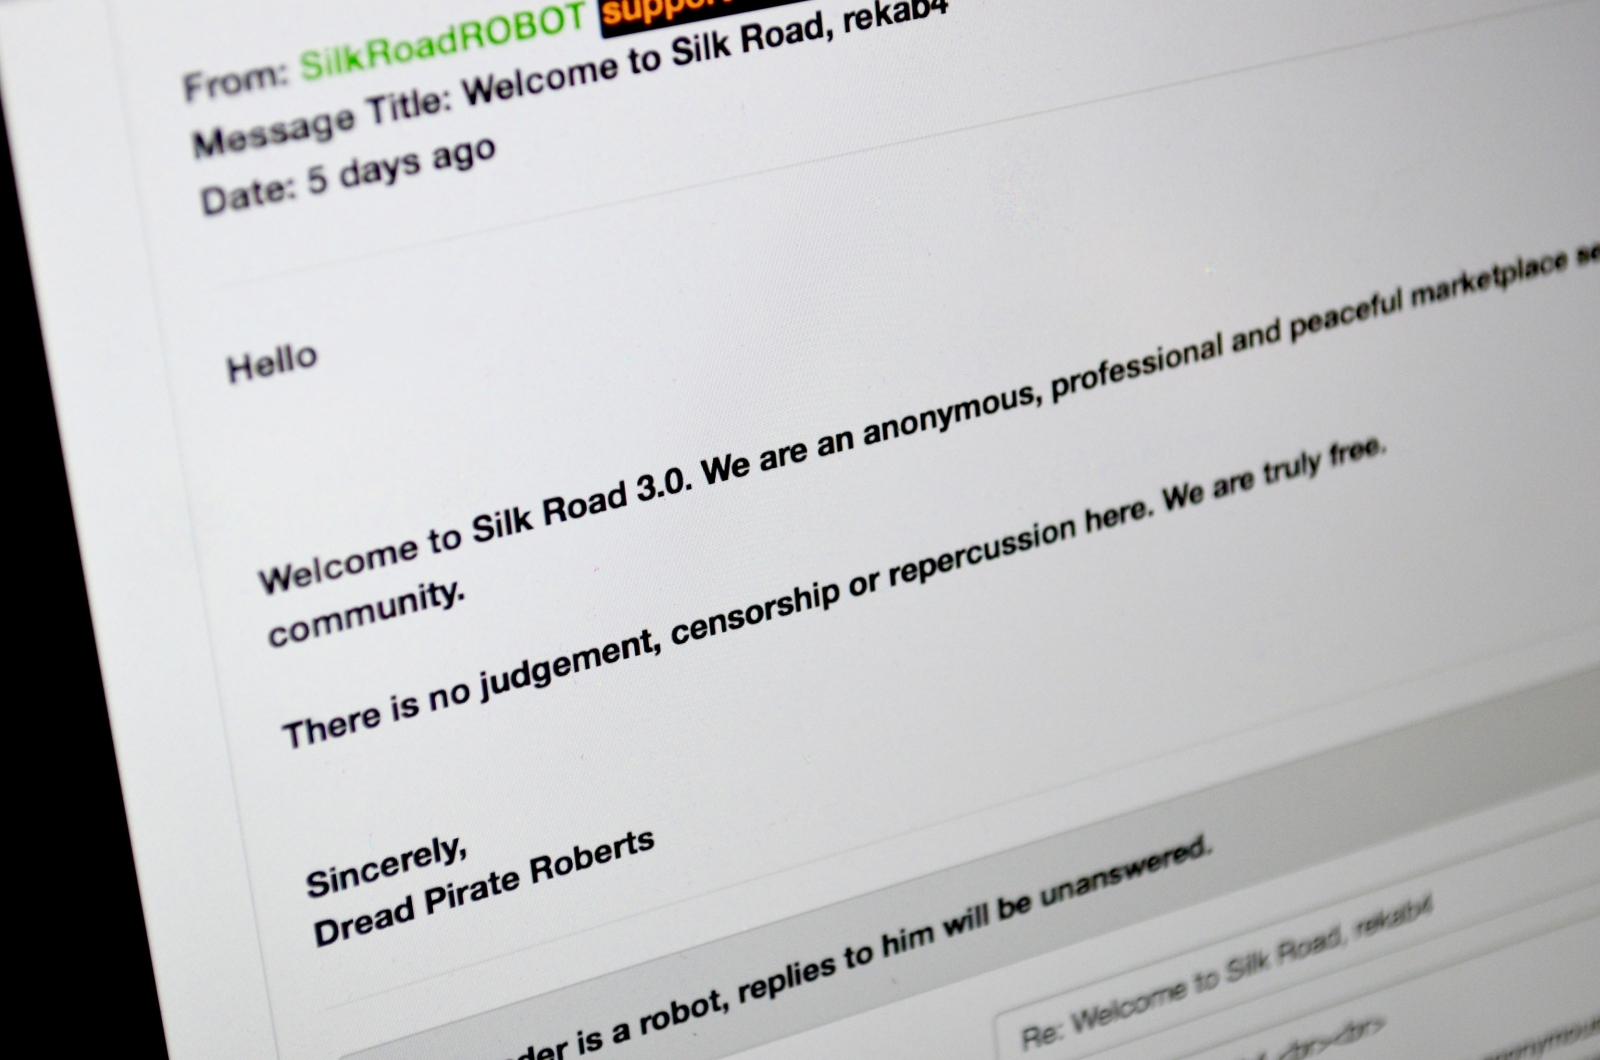 Silk Road 3 message from DPR